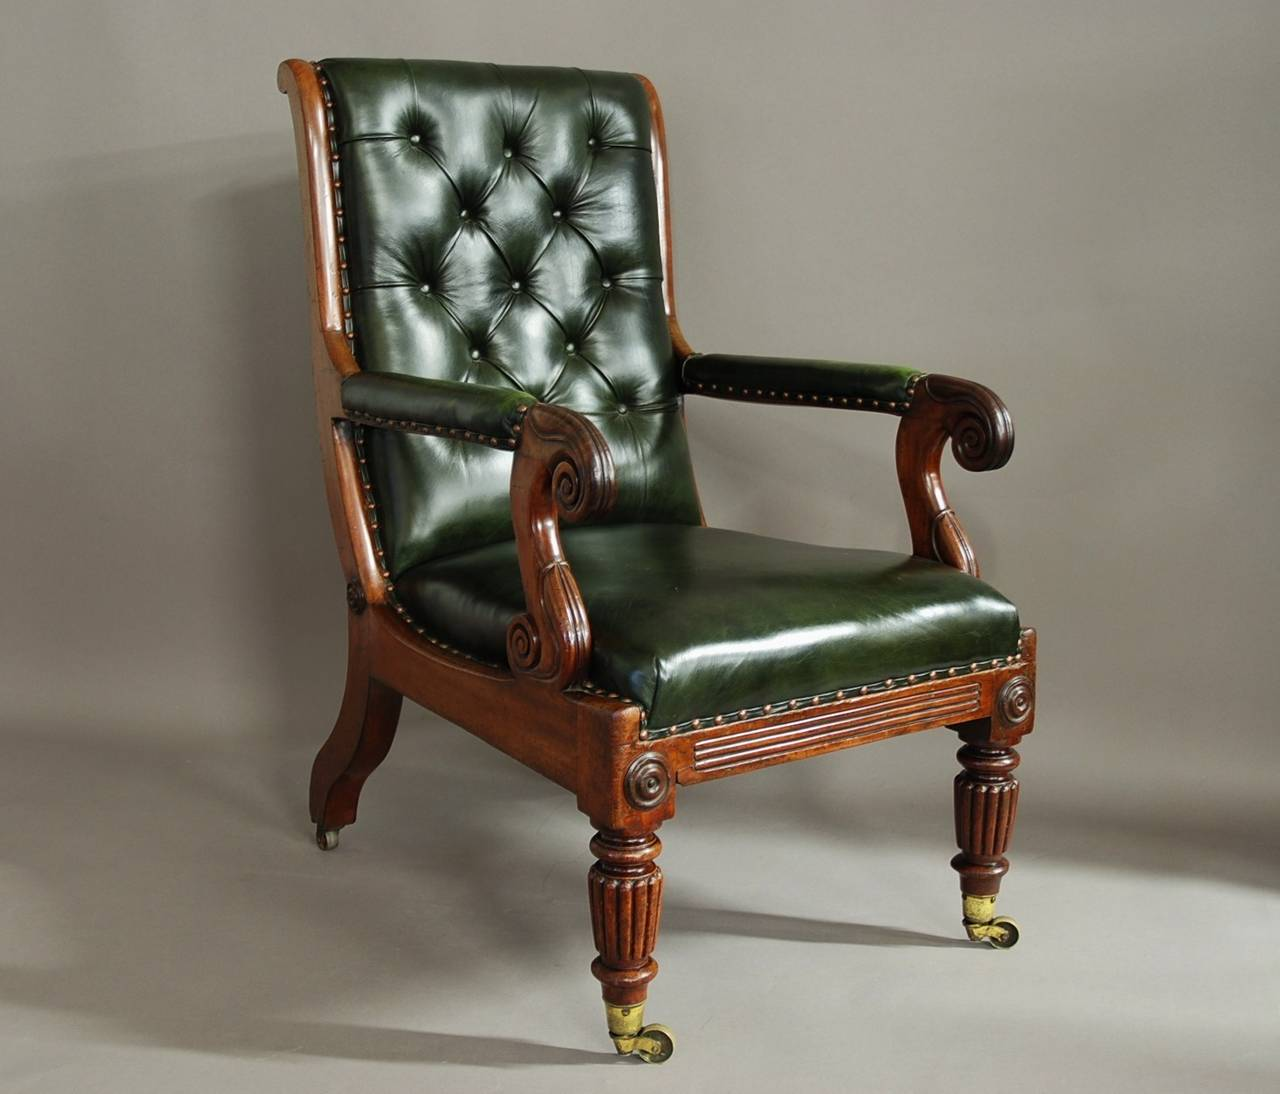 A superb William IV mahogany and green leather library chair. The chair  consists of a - William IV Mahogany And Leather Library Chair At 1stdibs